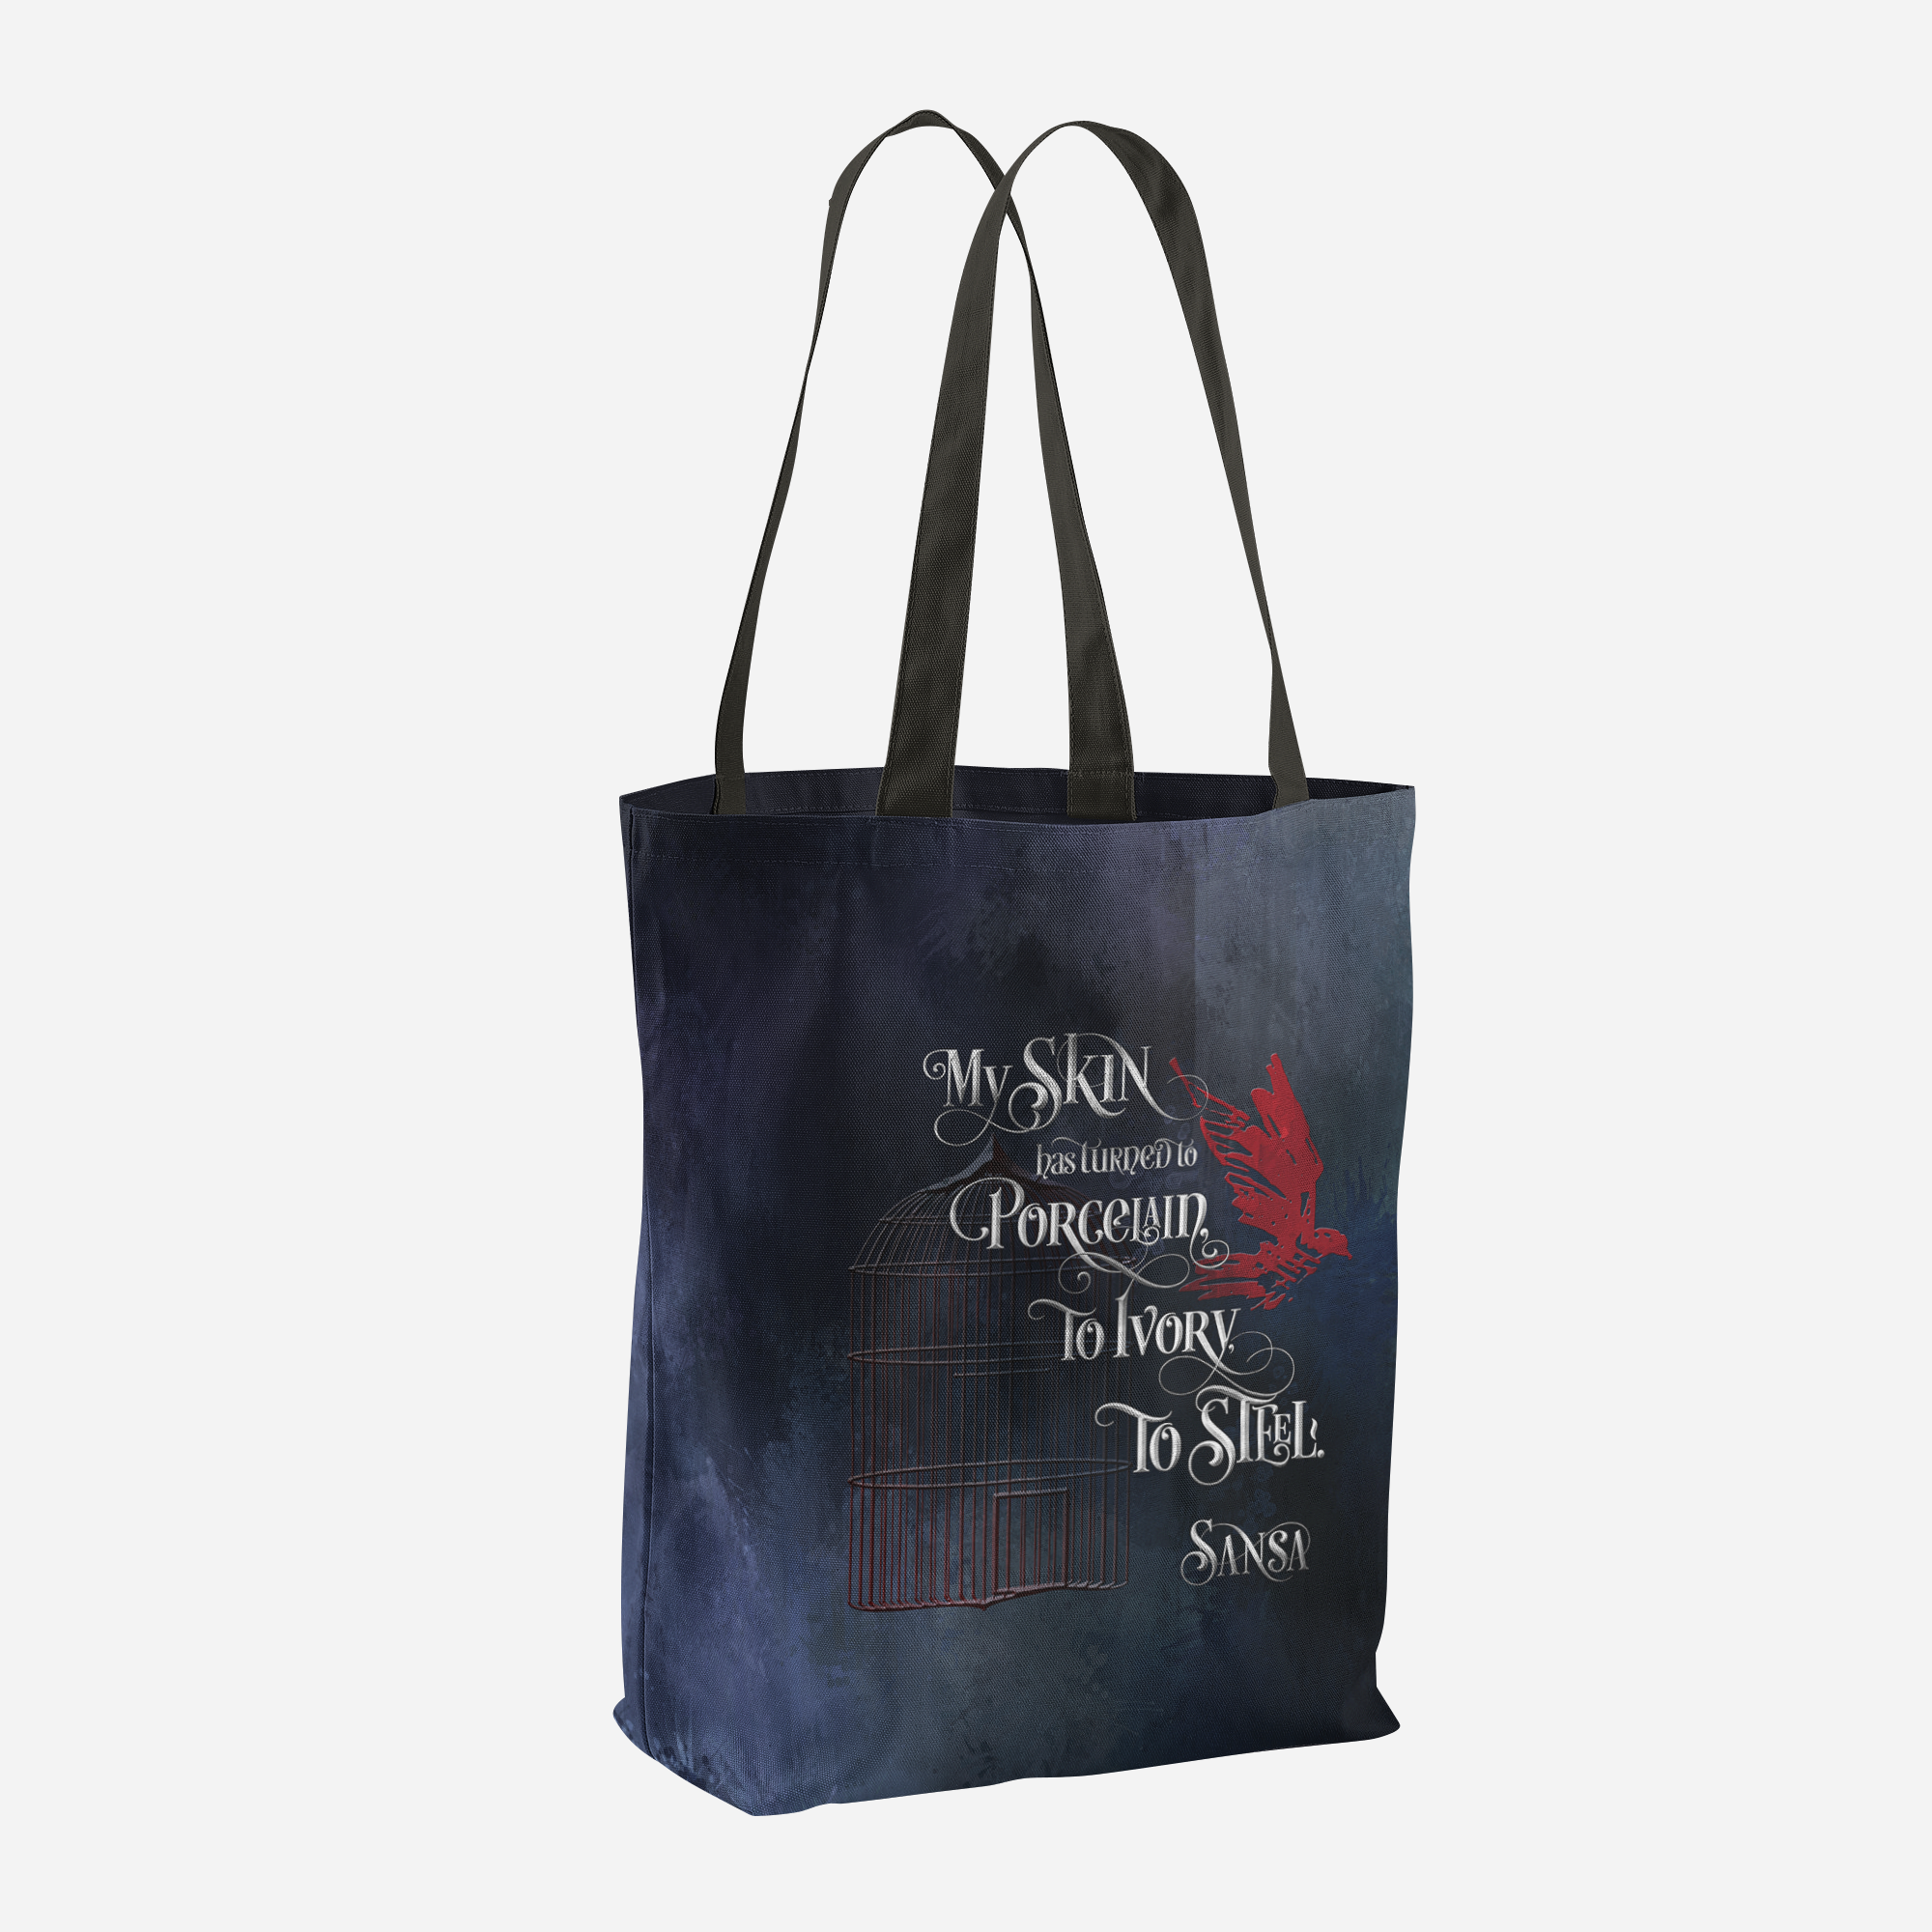 My skin has turned to porcelain... Sansa. Game of Thrones (A Song of Ice and Fire) Quote Tote Bag - LitLifeCo.